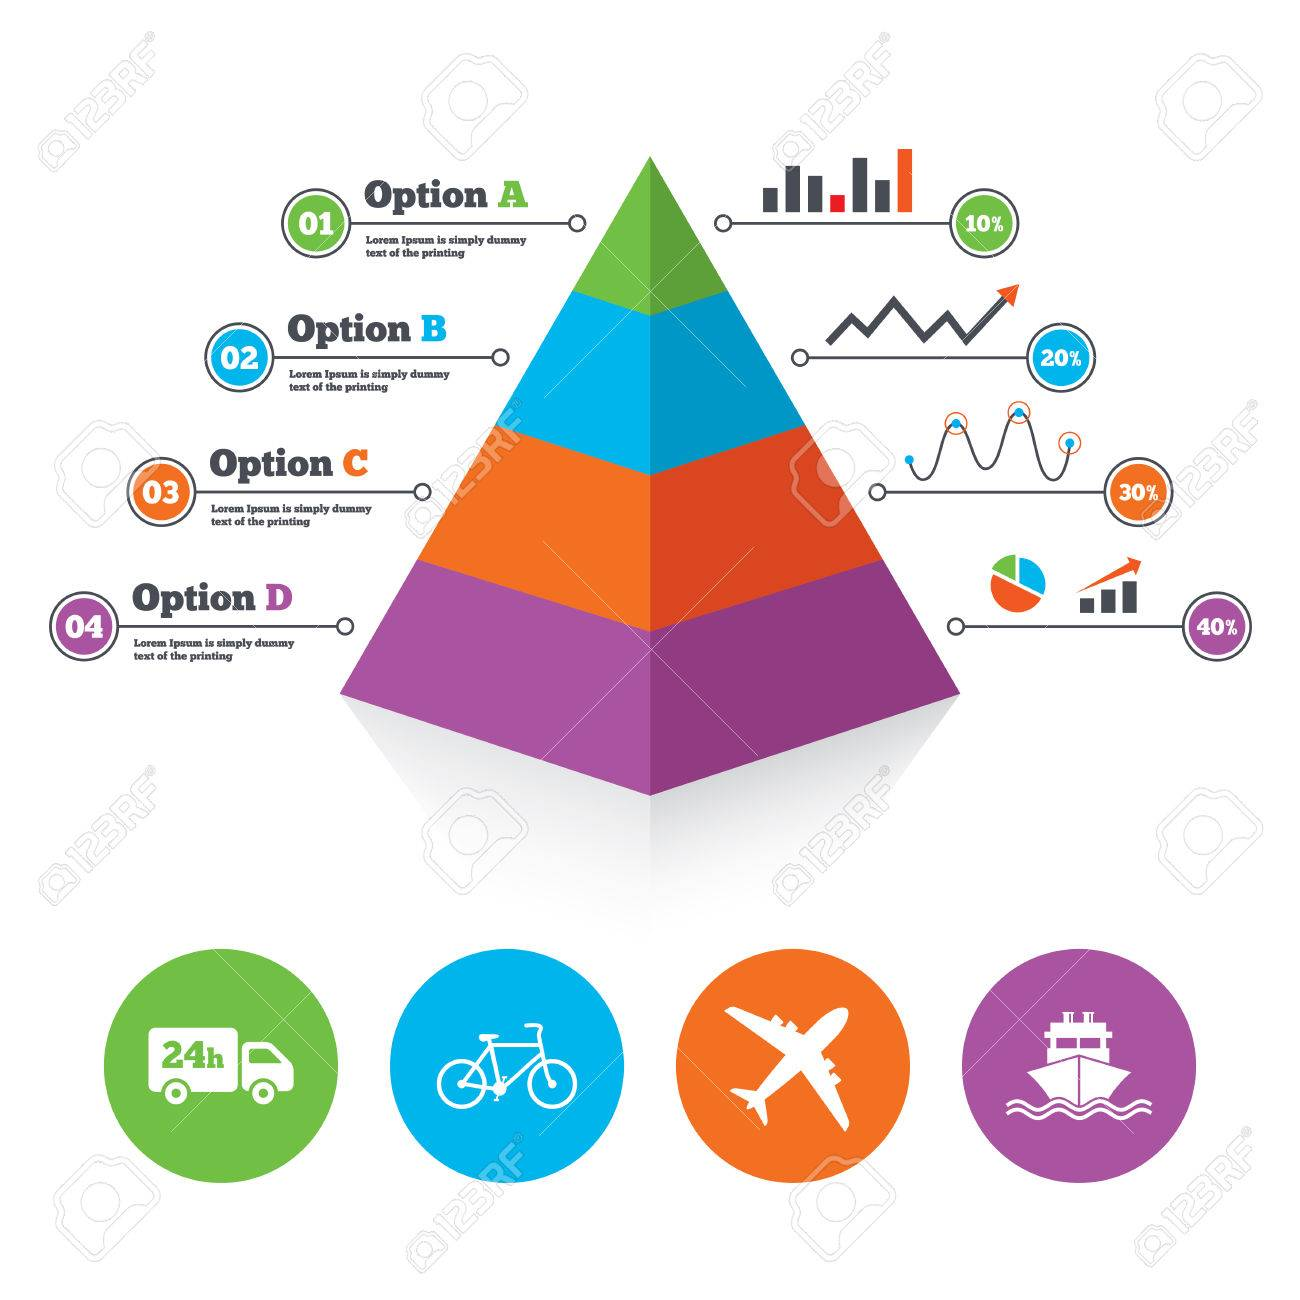 39366553 pyramid chart template cargo truck and shipping icons shipping and eco bicycle delivery signs transp pyramid chart template cargo truck and shipping icons shipping